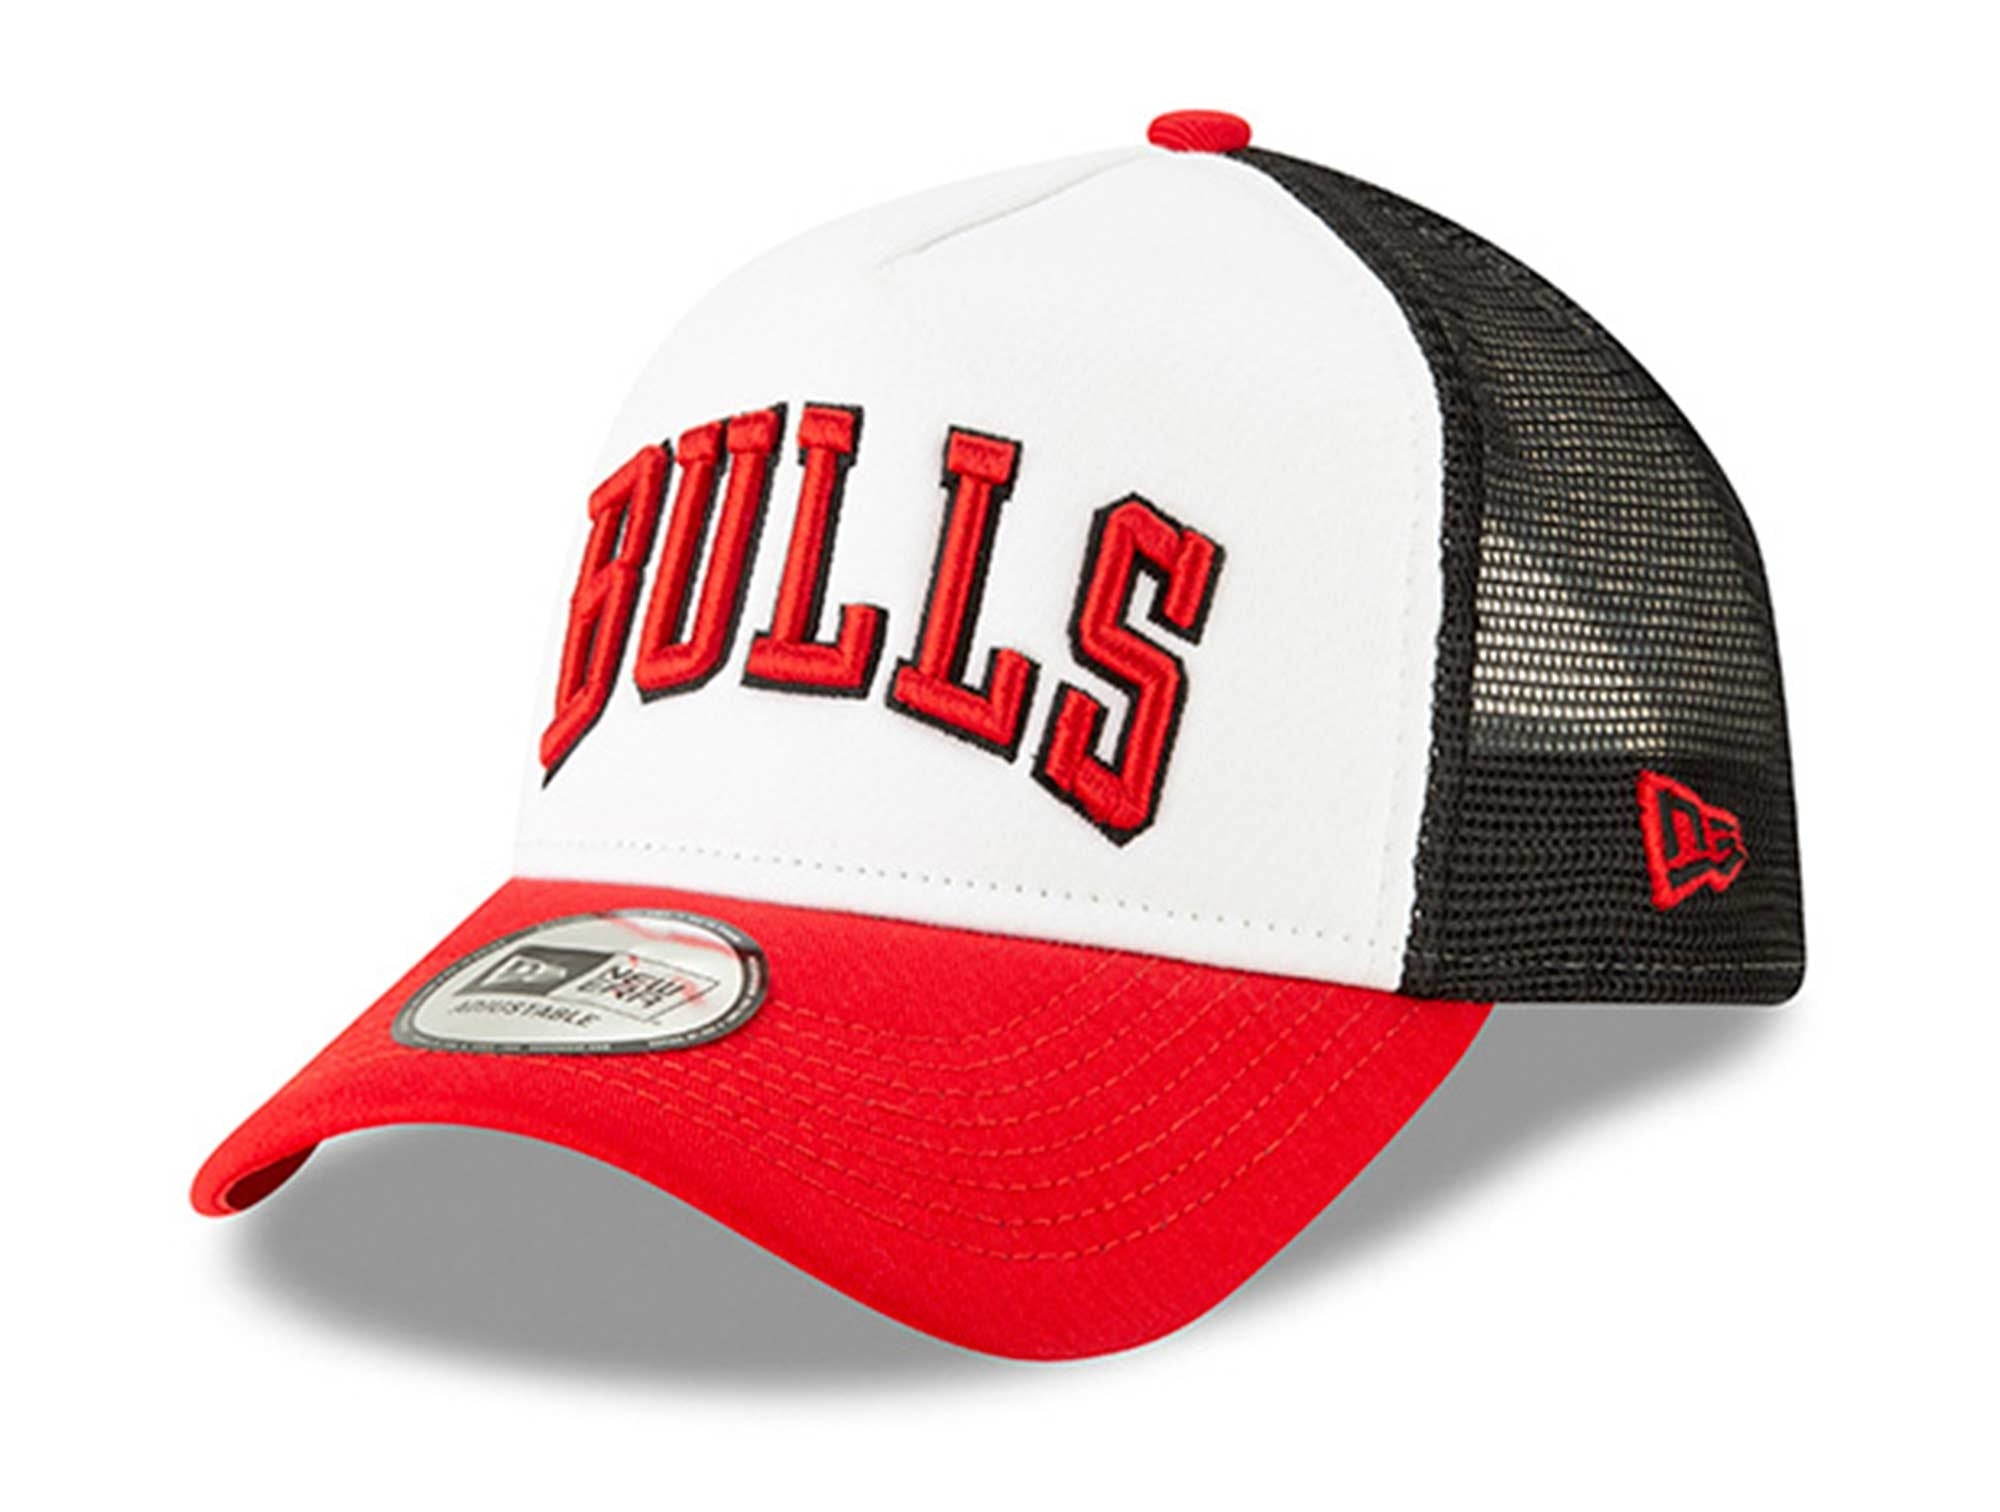 Jockey New Era Nba Chicago Bulls Unisex